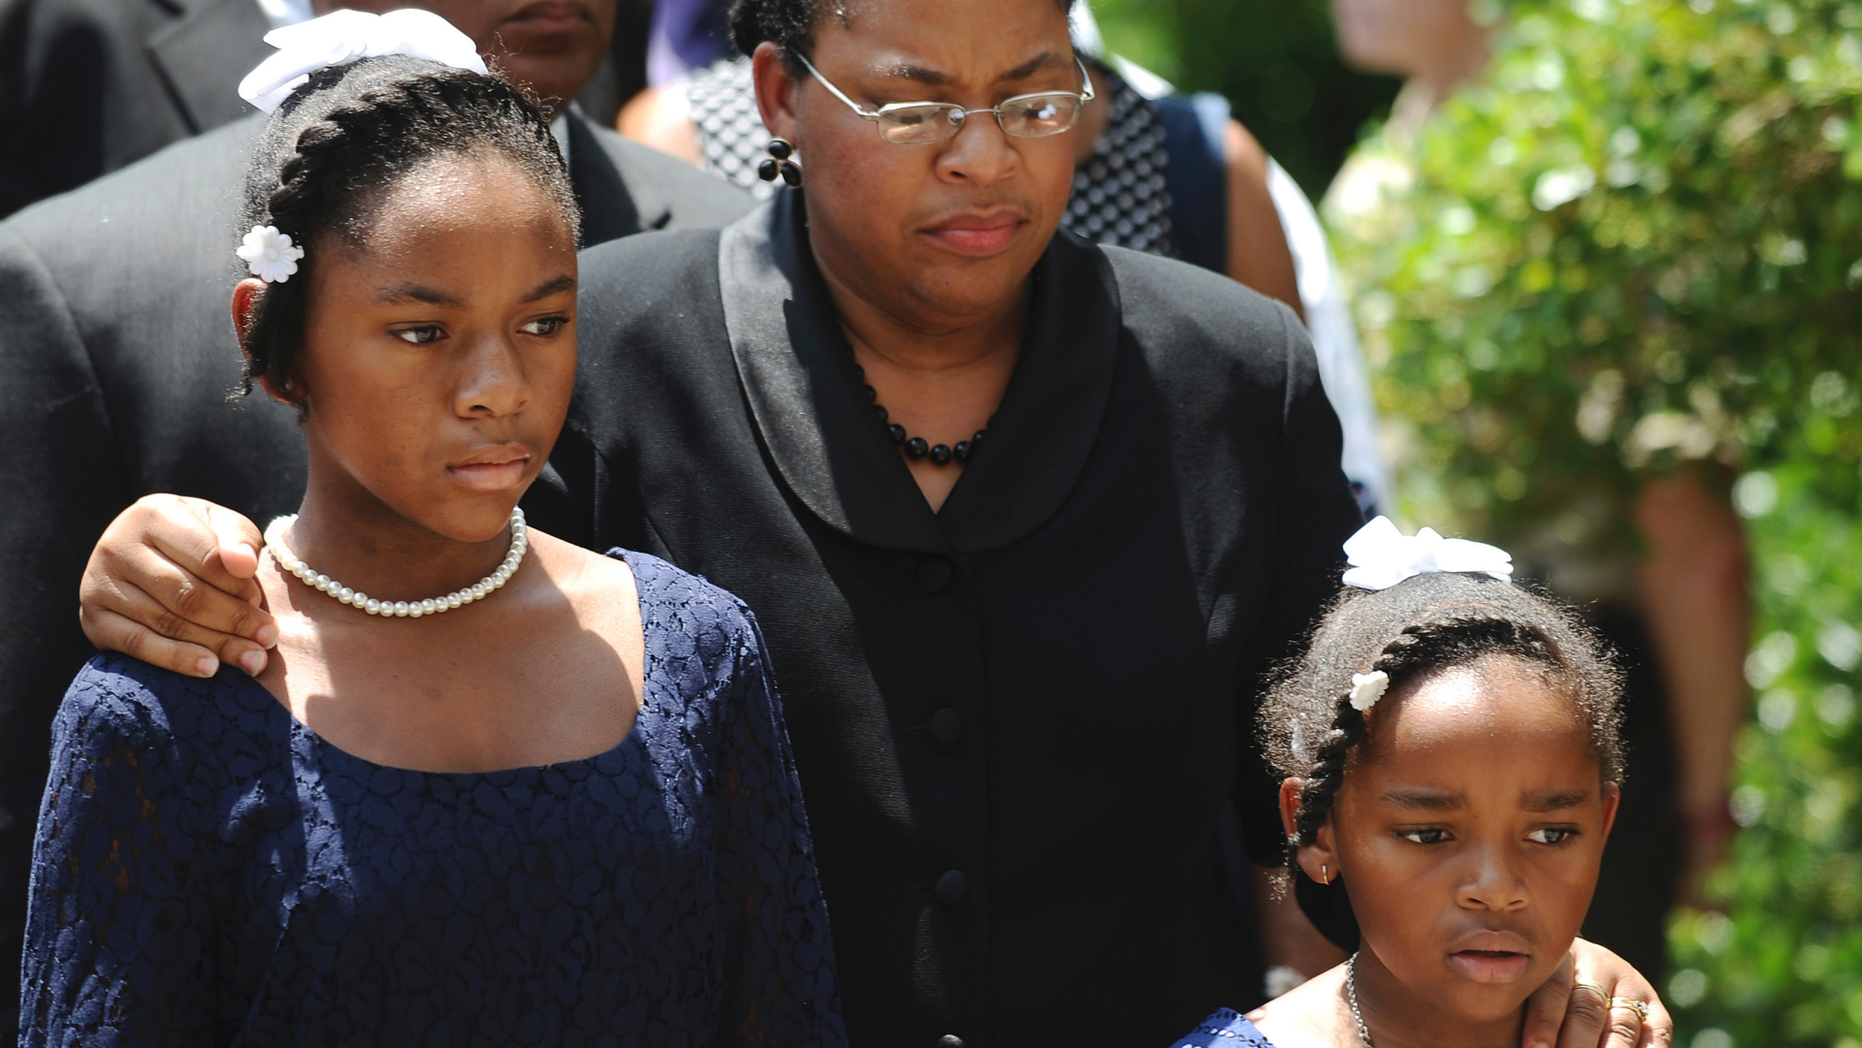 FILE - In this June 24, 2015, file photo Sen. Clementa Pinckney's wife Jennifer Pinckney, center, and her daughters, Eliana, left, and Malana, right, follow his casket into the South Carolina Statehouse in Columbia, S.C. The Rev. Clementa Pinckney, was one of the nine killed by Dylann Roof, who sat through 45 minutes of Bible study at the church before firing shots. Pinckney and her daughter, Malana, were in the late reverend's office when they heard gun shots in another room. (AP Photo/Rainier Ehrhardt, File)